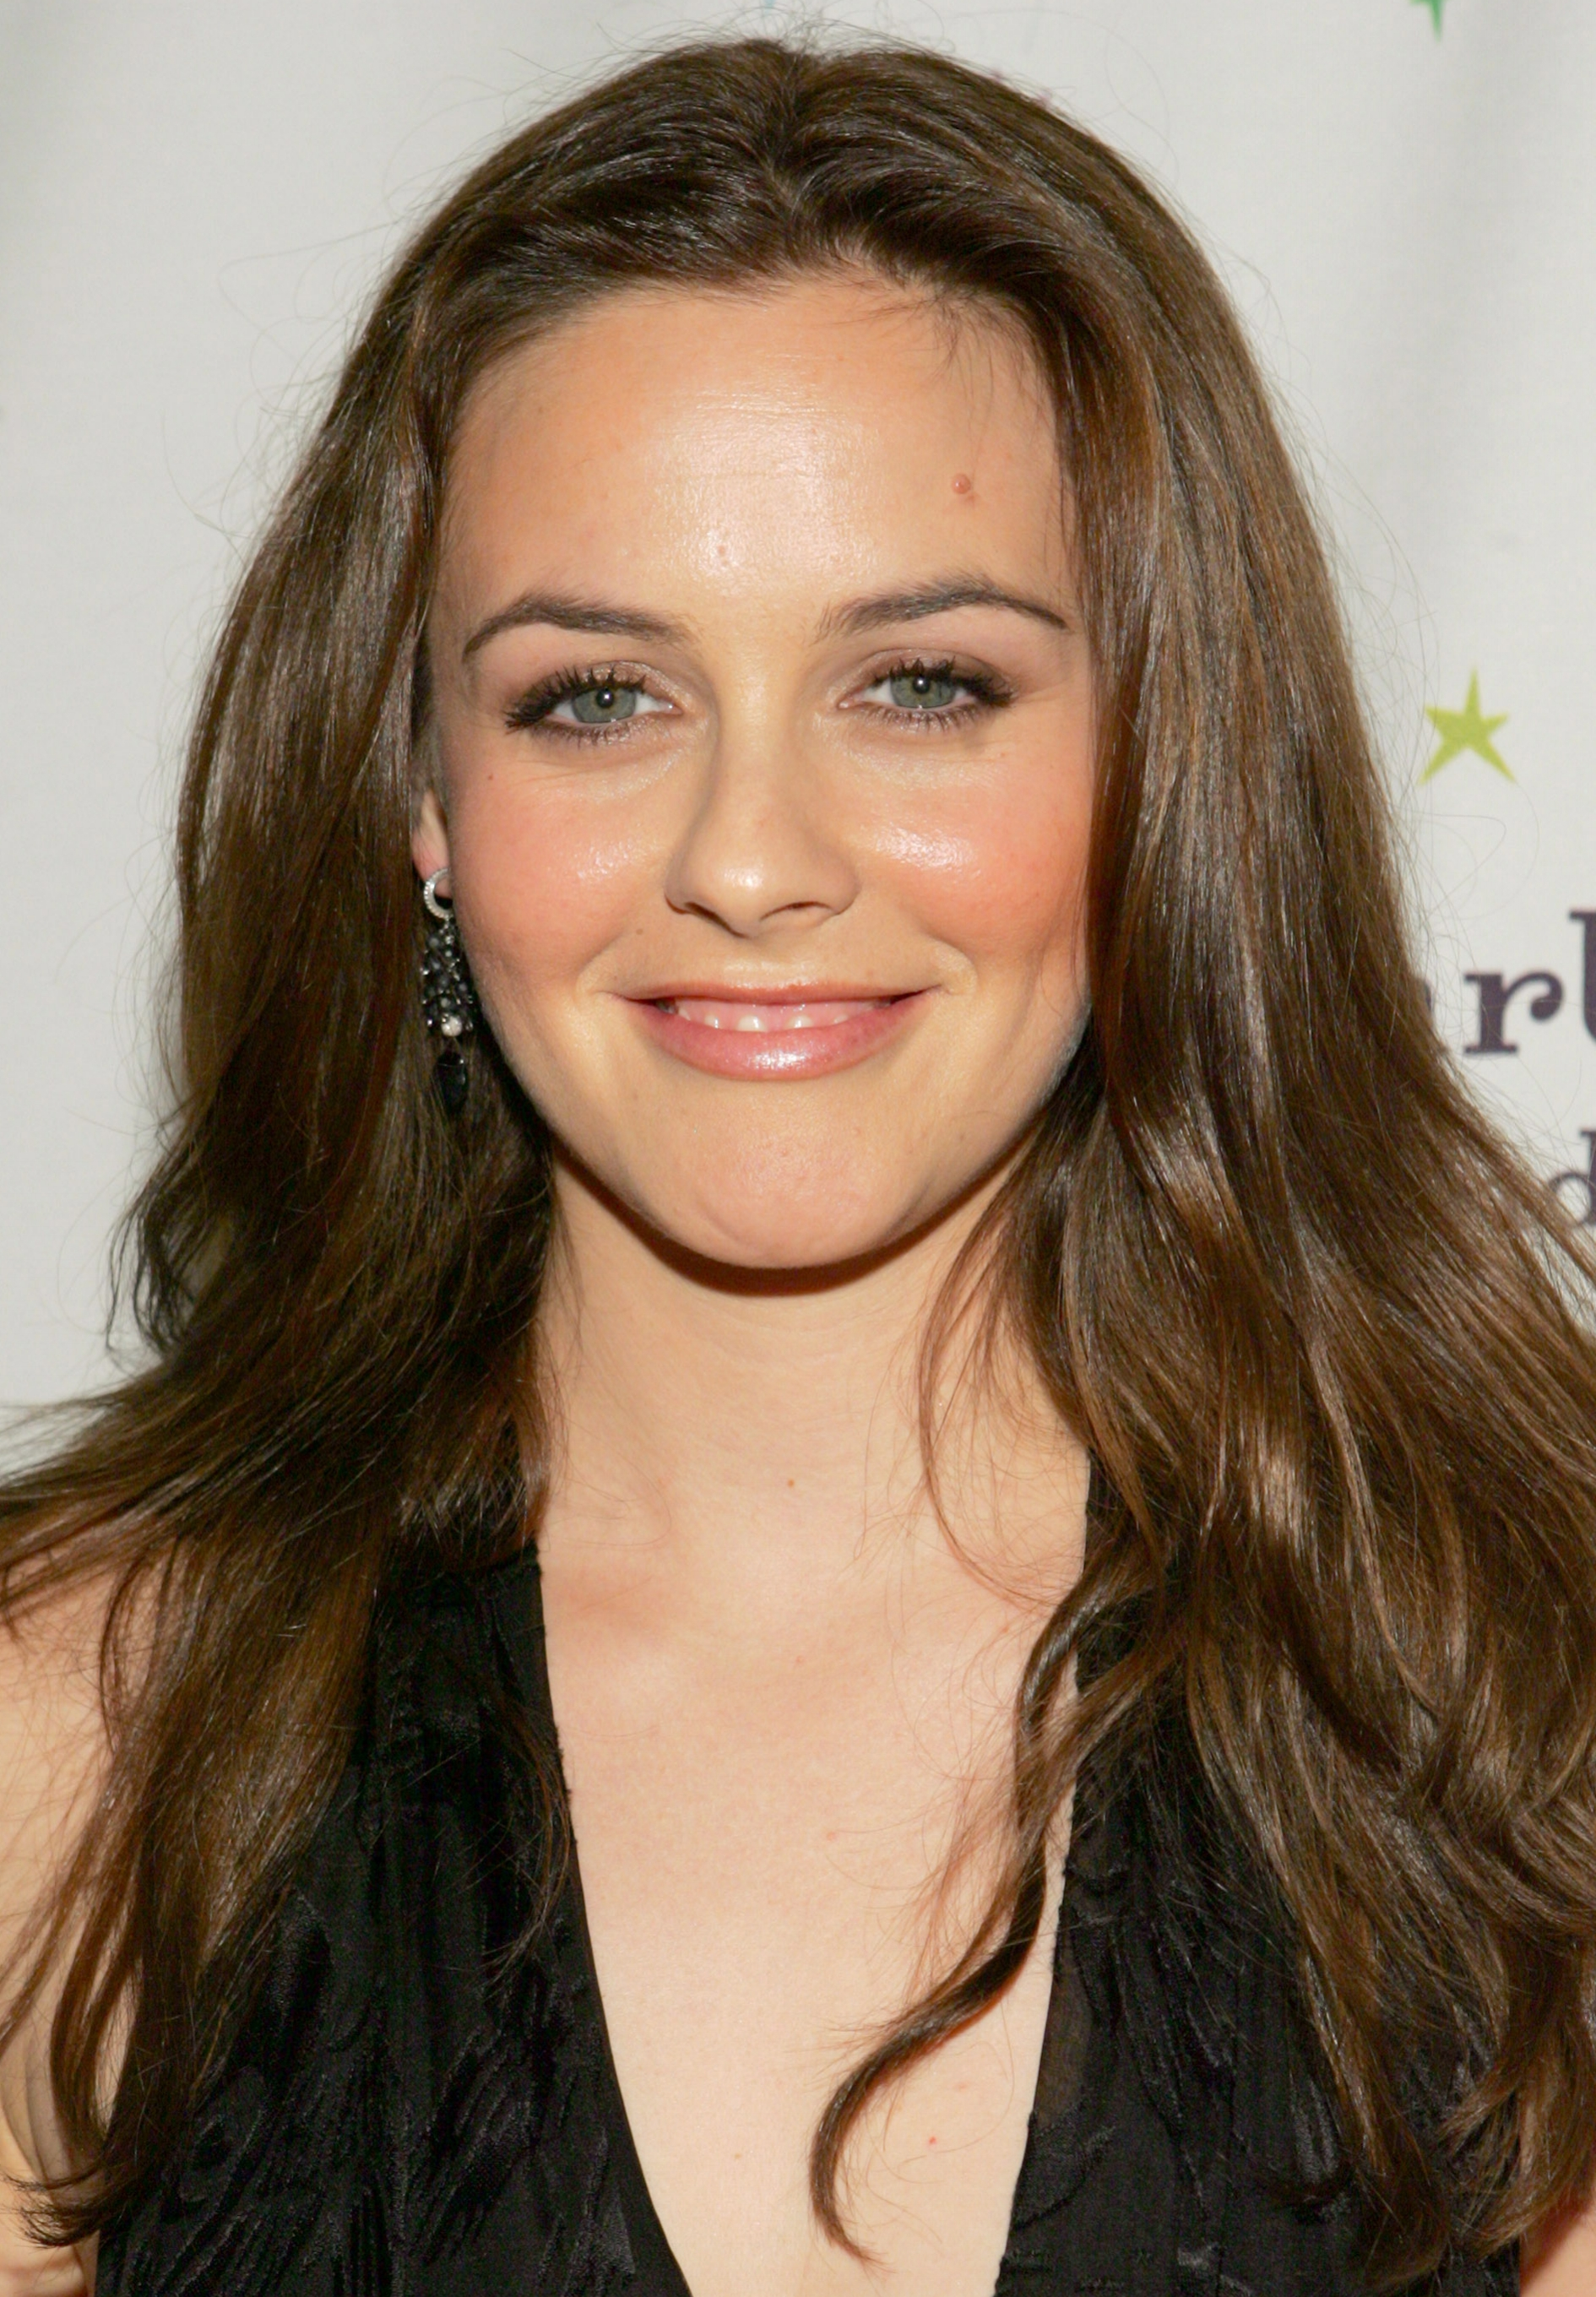 Get Alicia Silverstone's Look - Vegan Makeup look for Eluxe Magazine